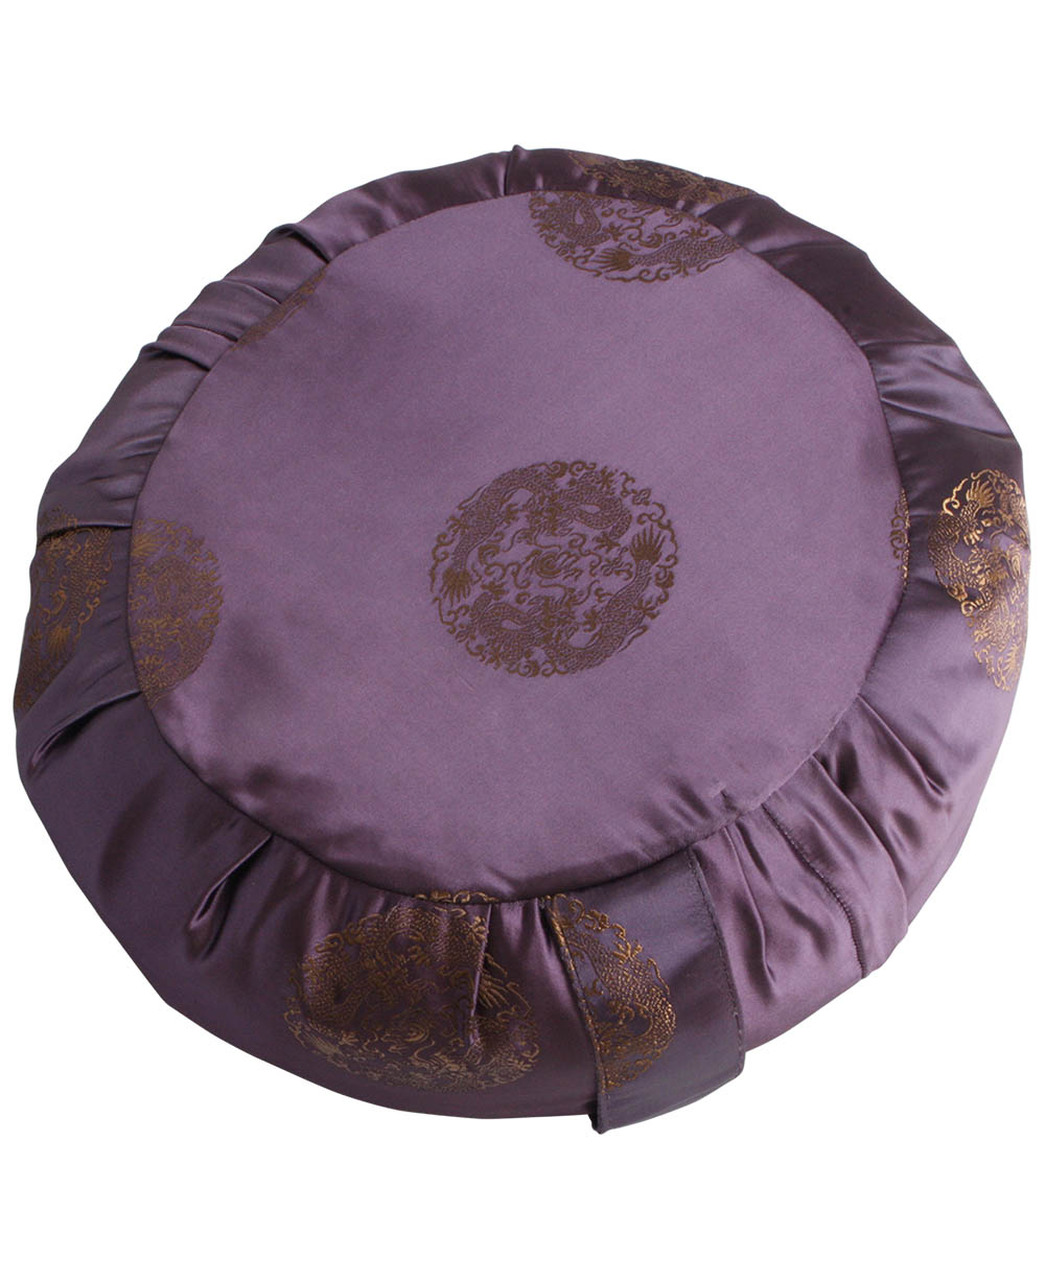 Satin Zafu Cushion with Dragon Design